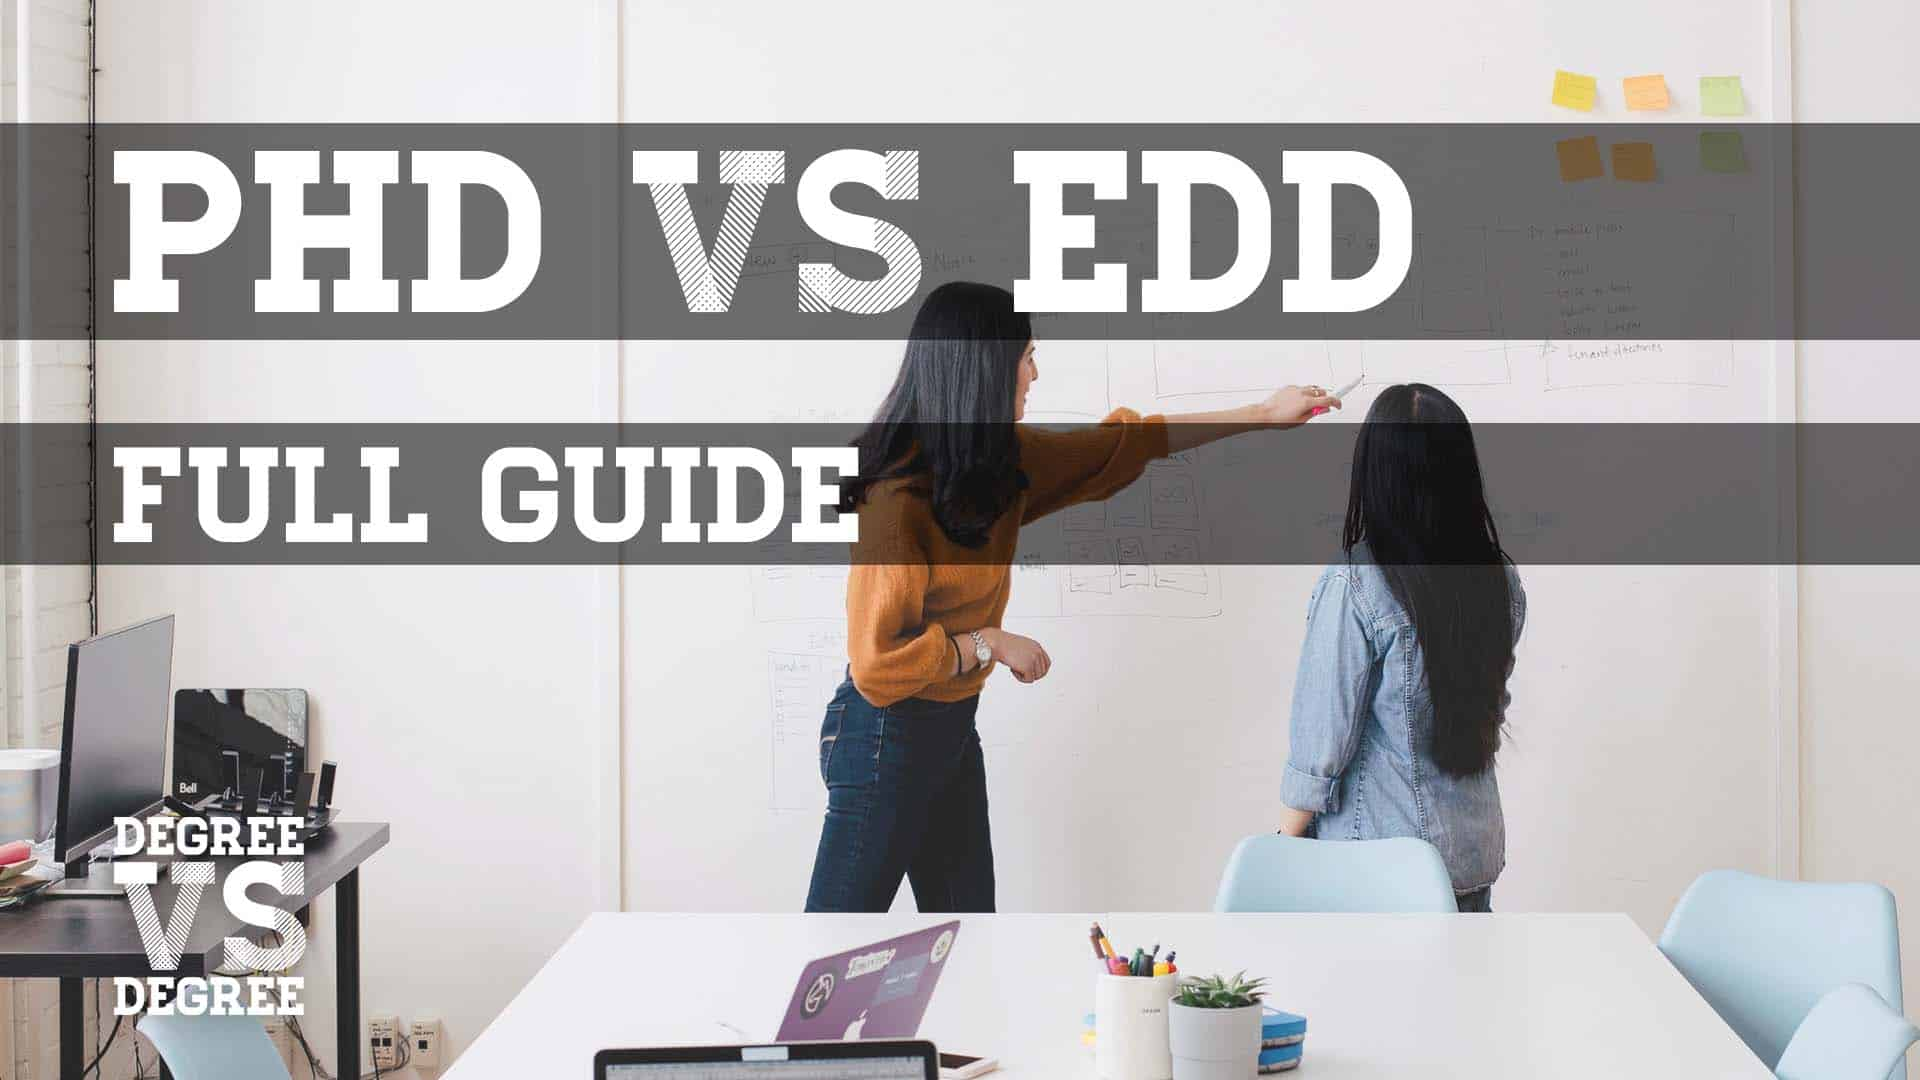 Content analysis of the phd versus edd dissertation